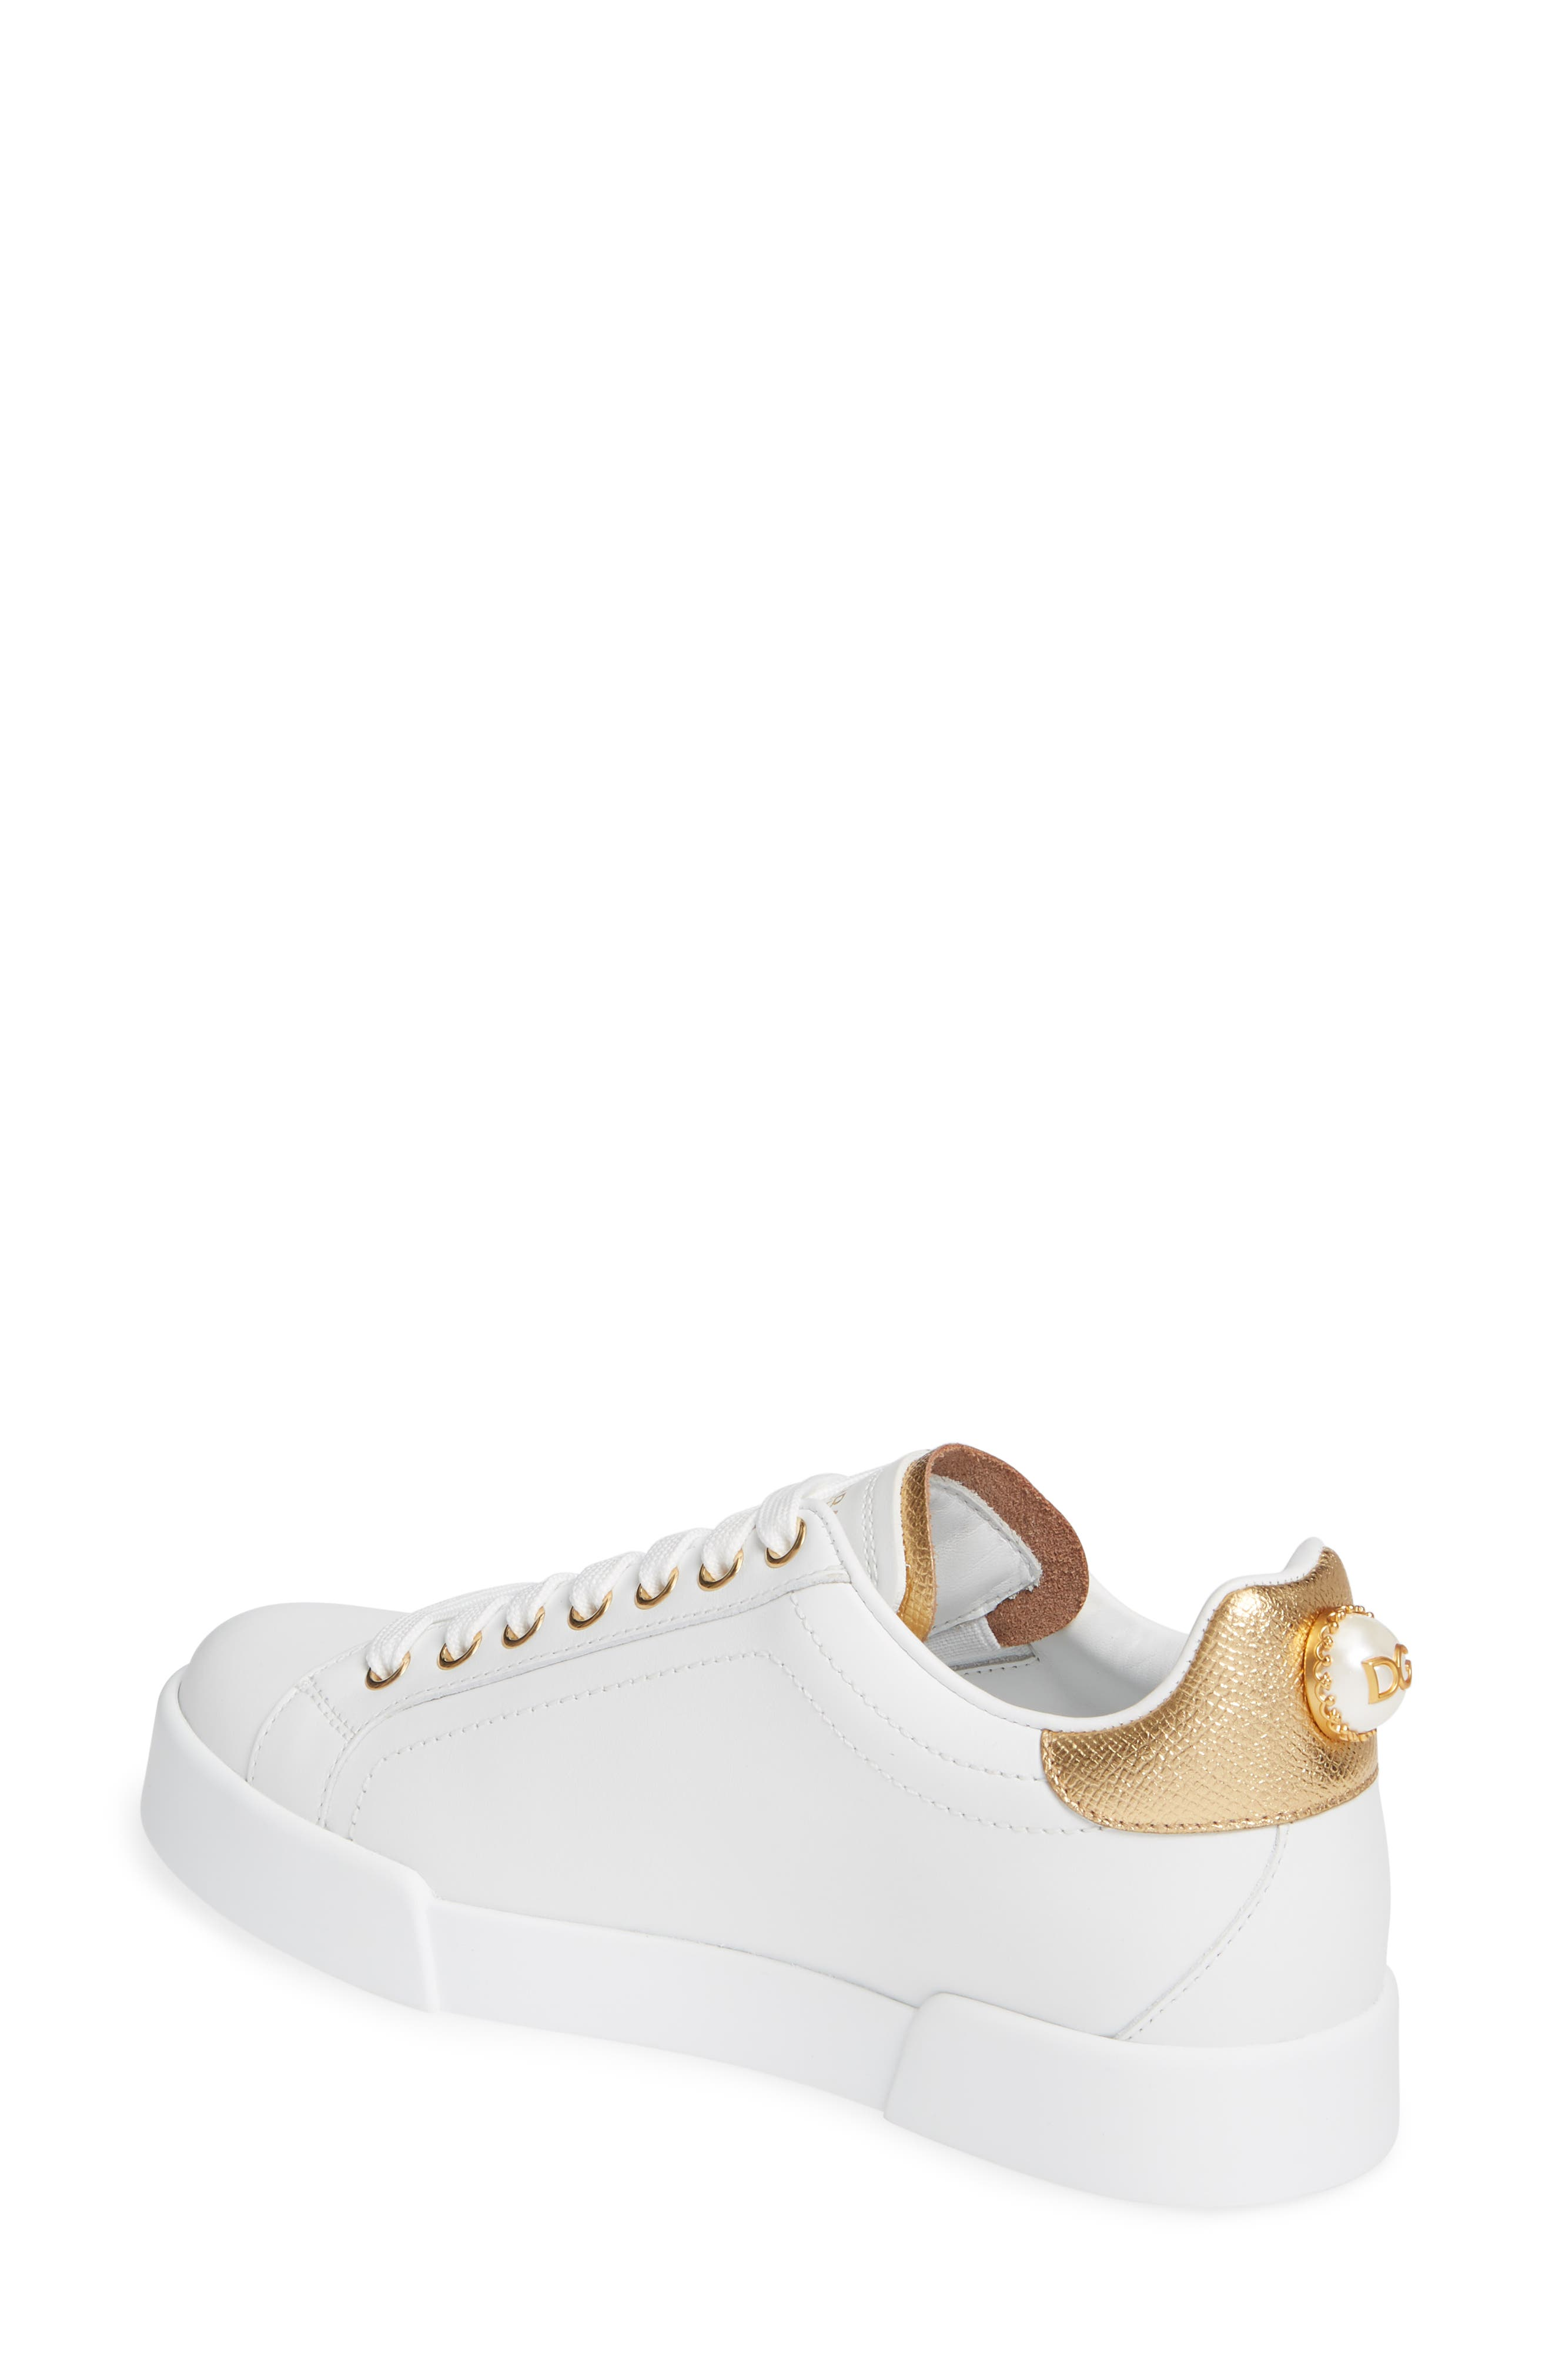 8fe352b5092 Dolce and Gabbana Shoes for Women